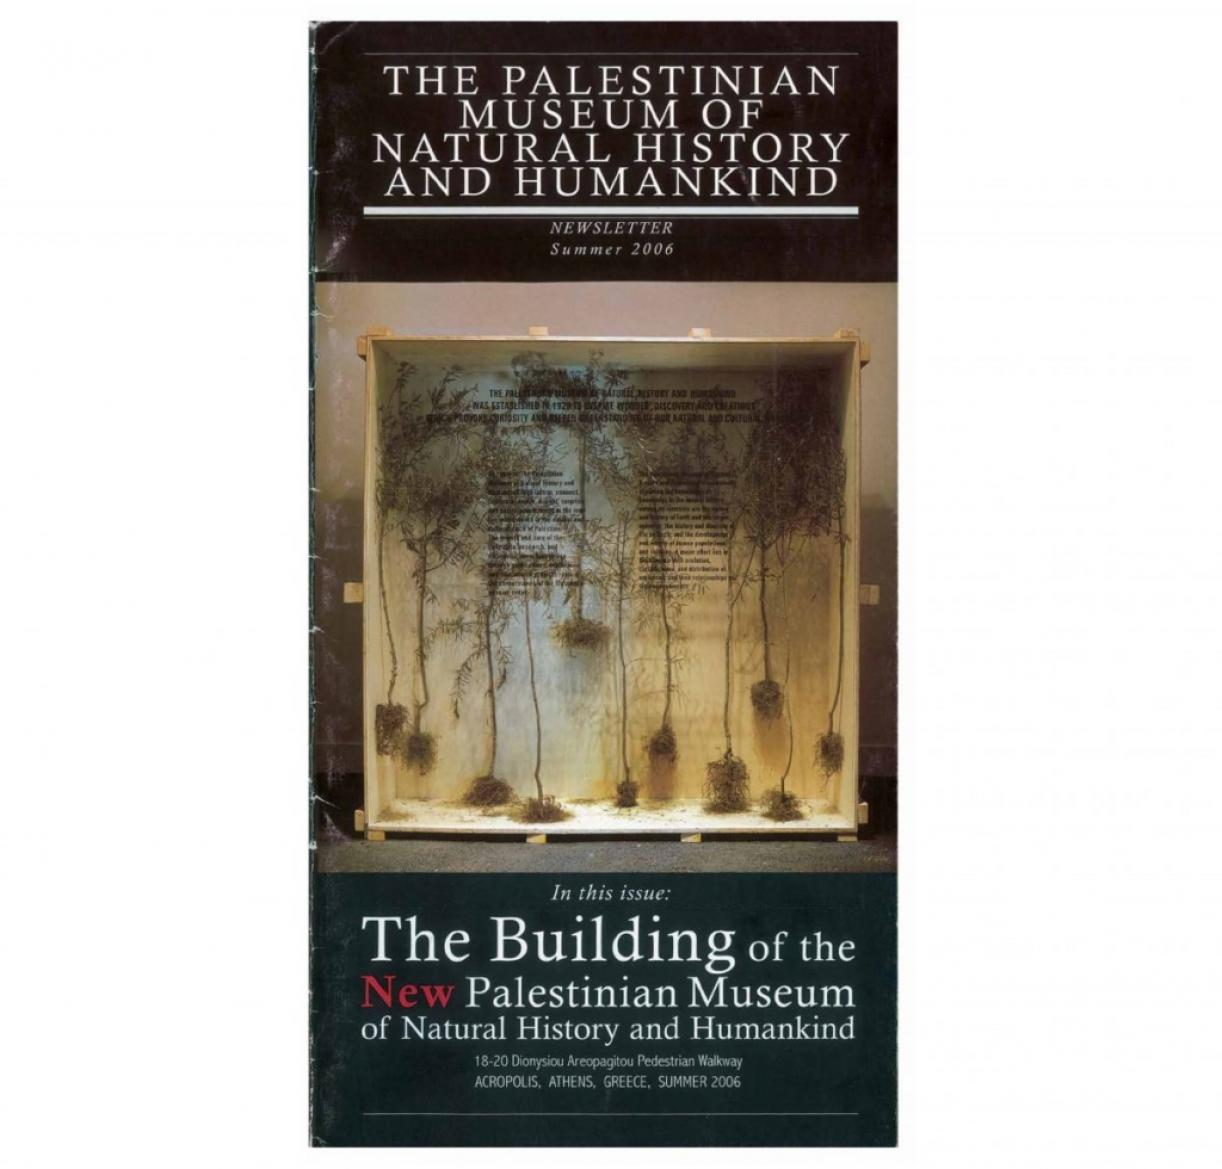 The Palestinian Museum of Natural History and Humankind, Newsletter, Summer 2006